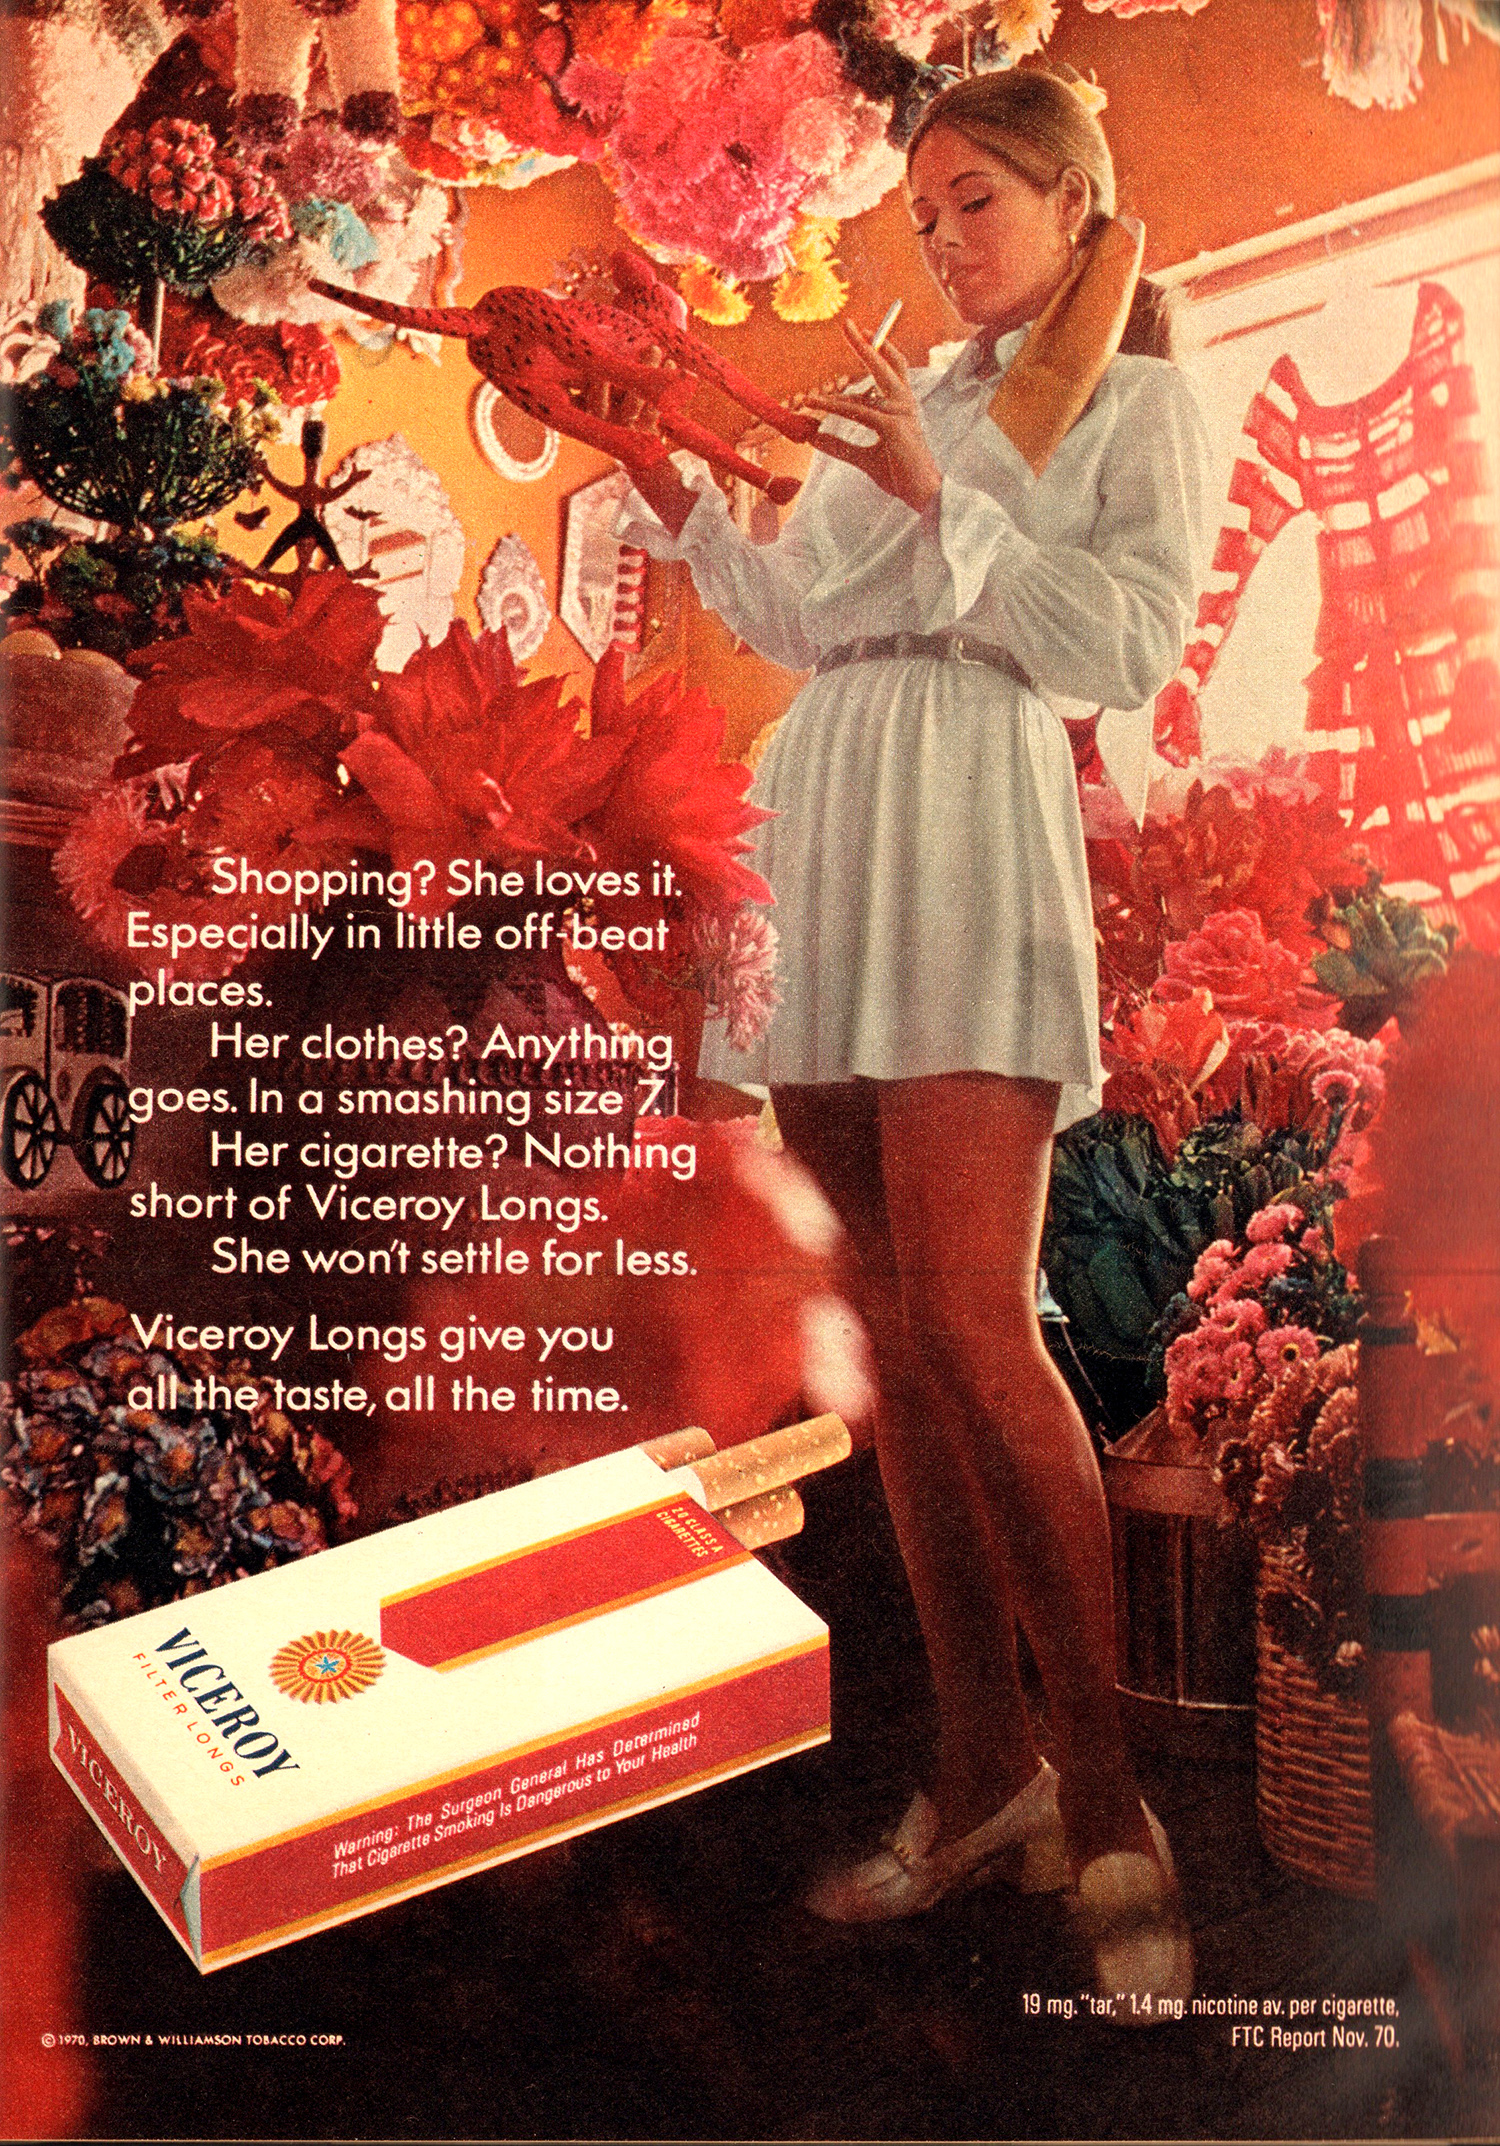 viceroy cigarette advert